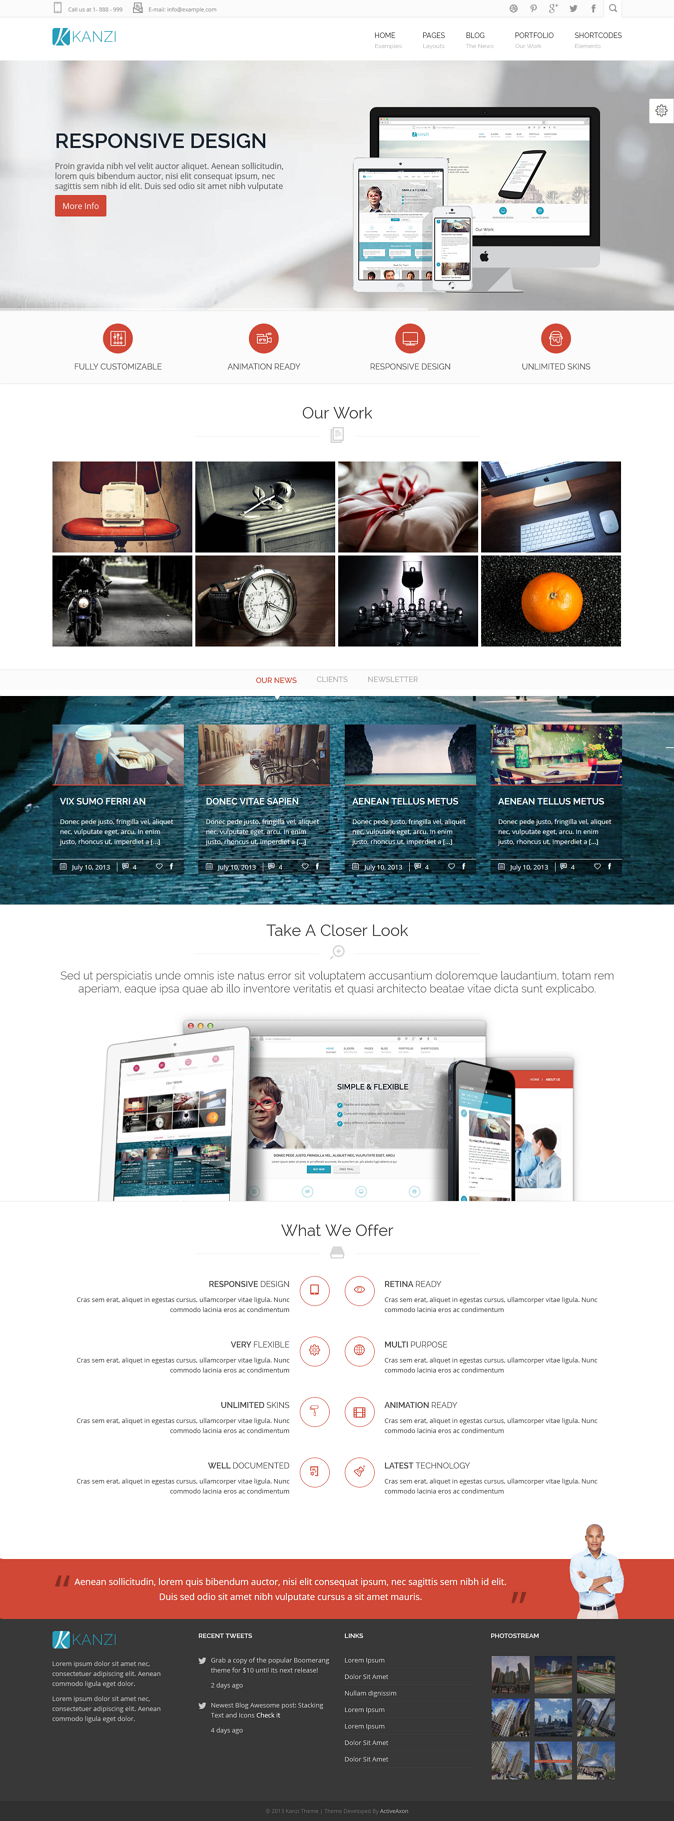 Kanzi is Clean, Flexible, Responsive & Retina ready Multipurpose HTML5/CSS3 Template.